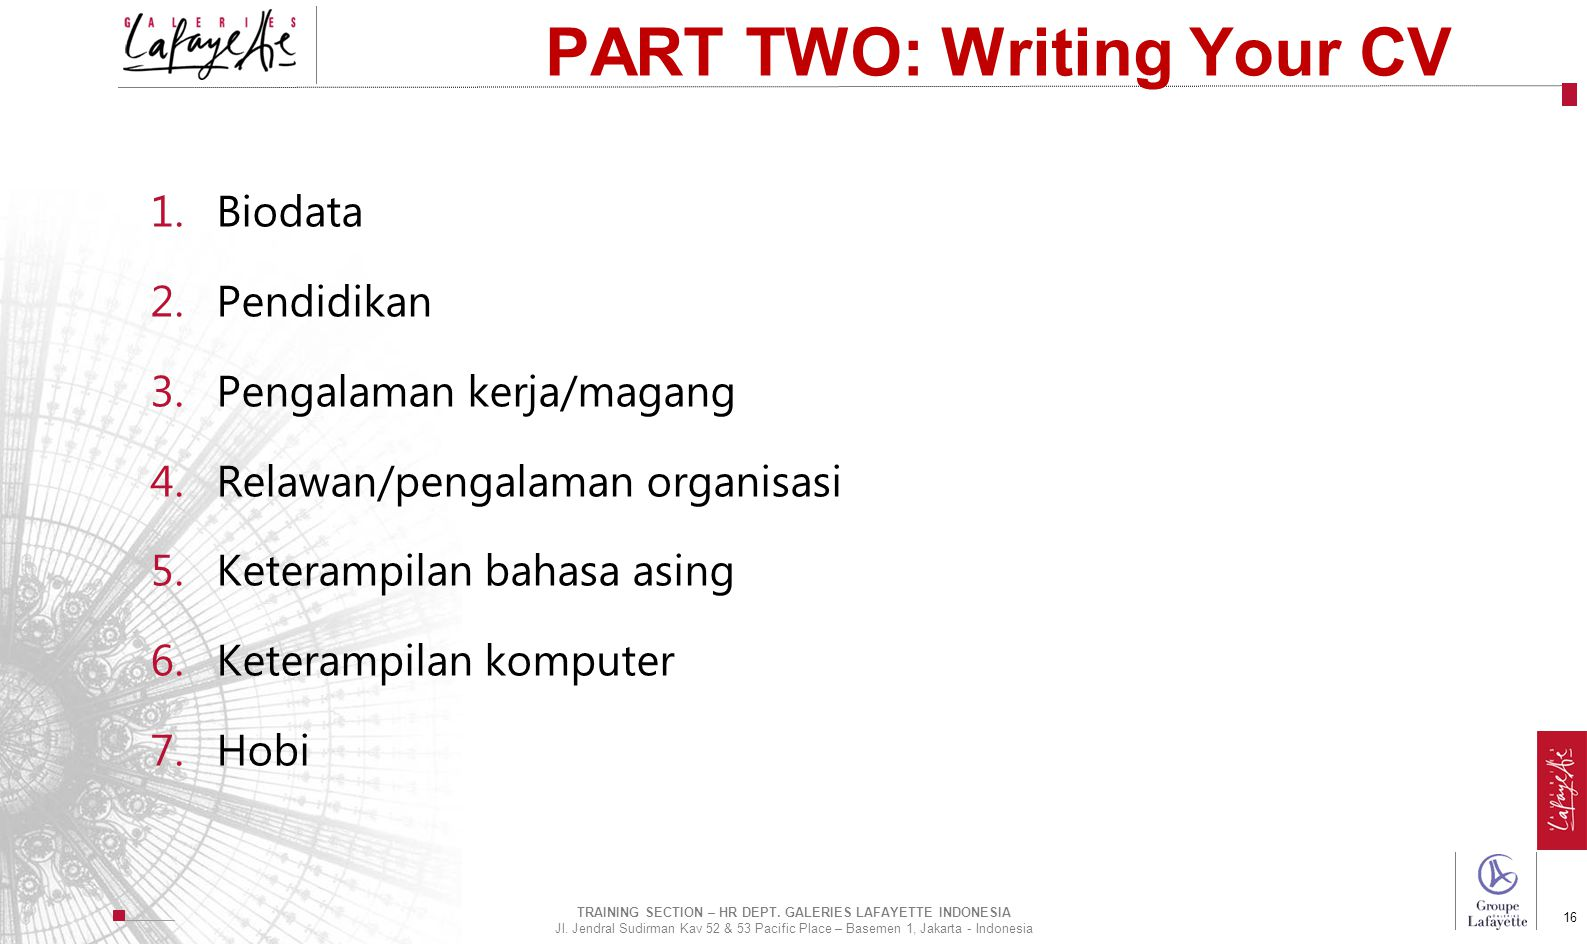 PART TWO: Writing Your CV